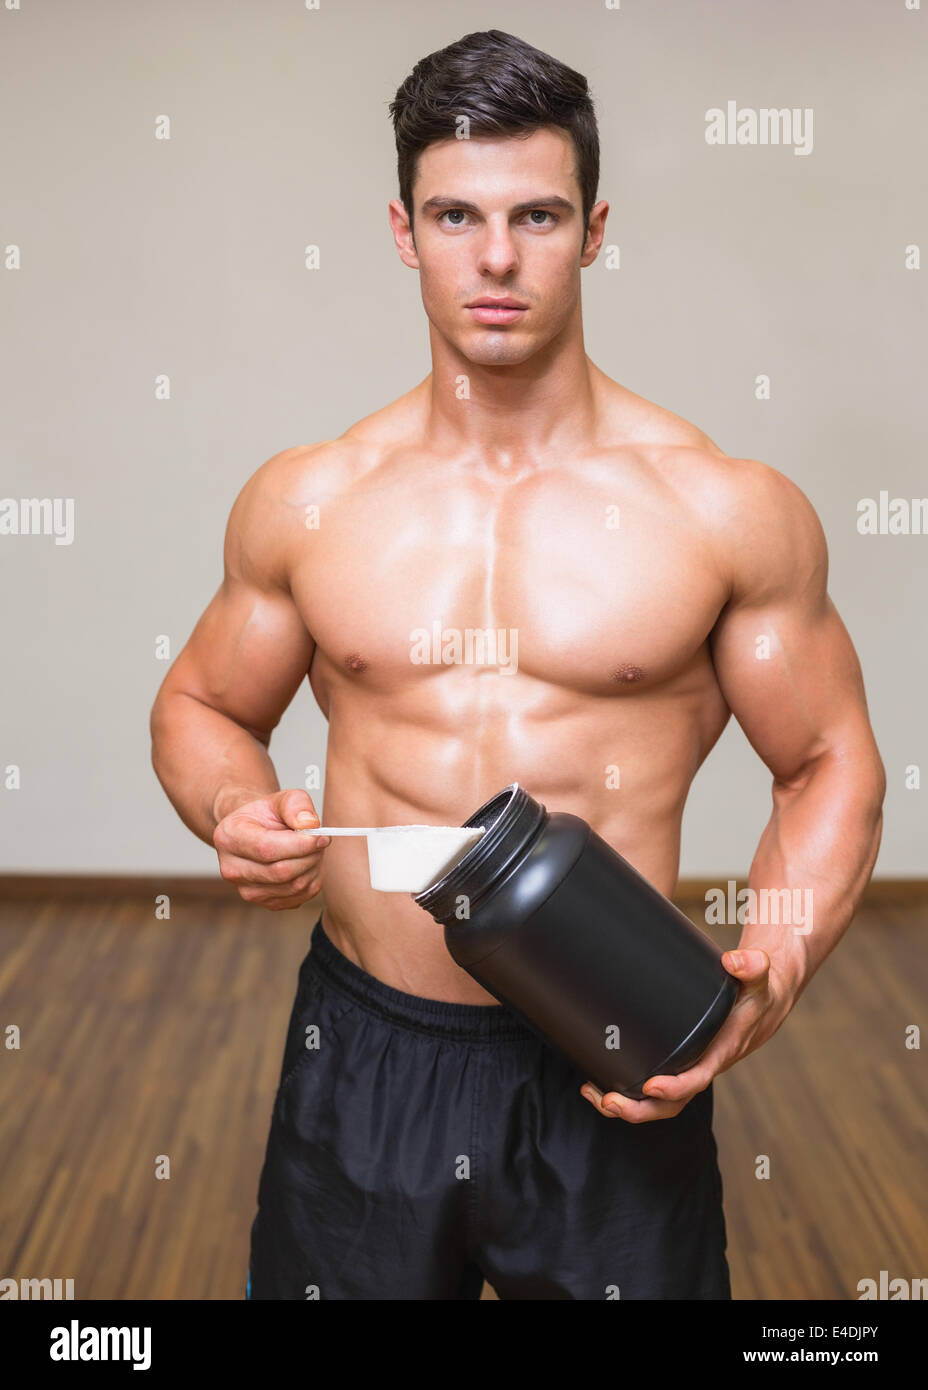 Body builder holding a scoop of protein mix in gym Stock Photo